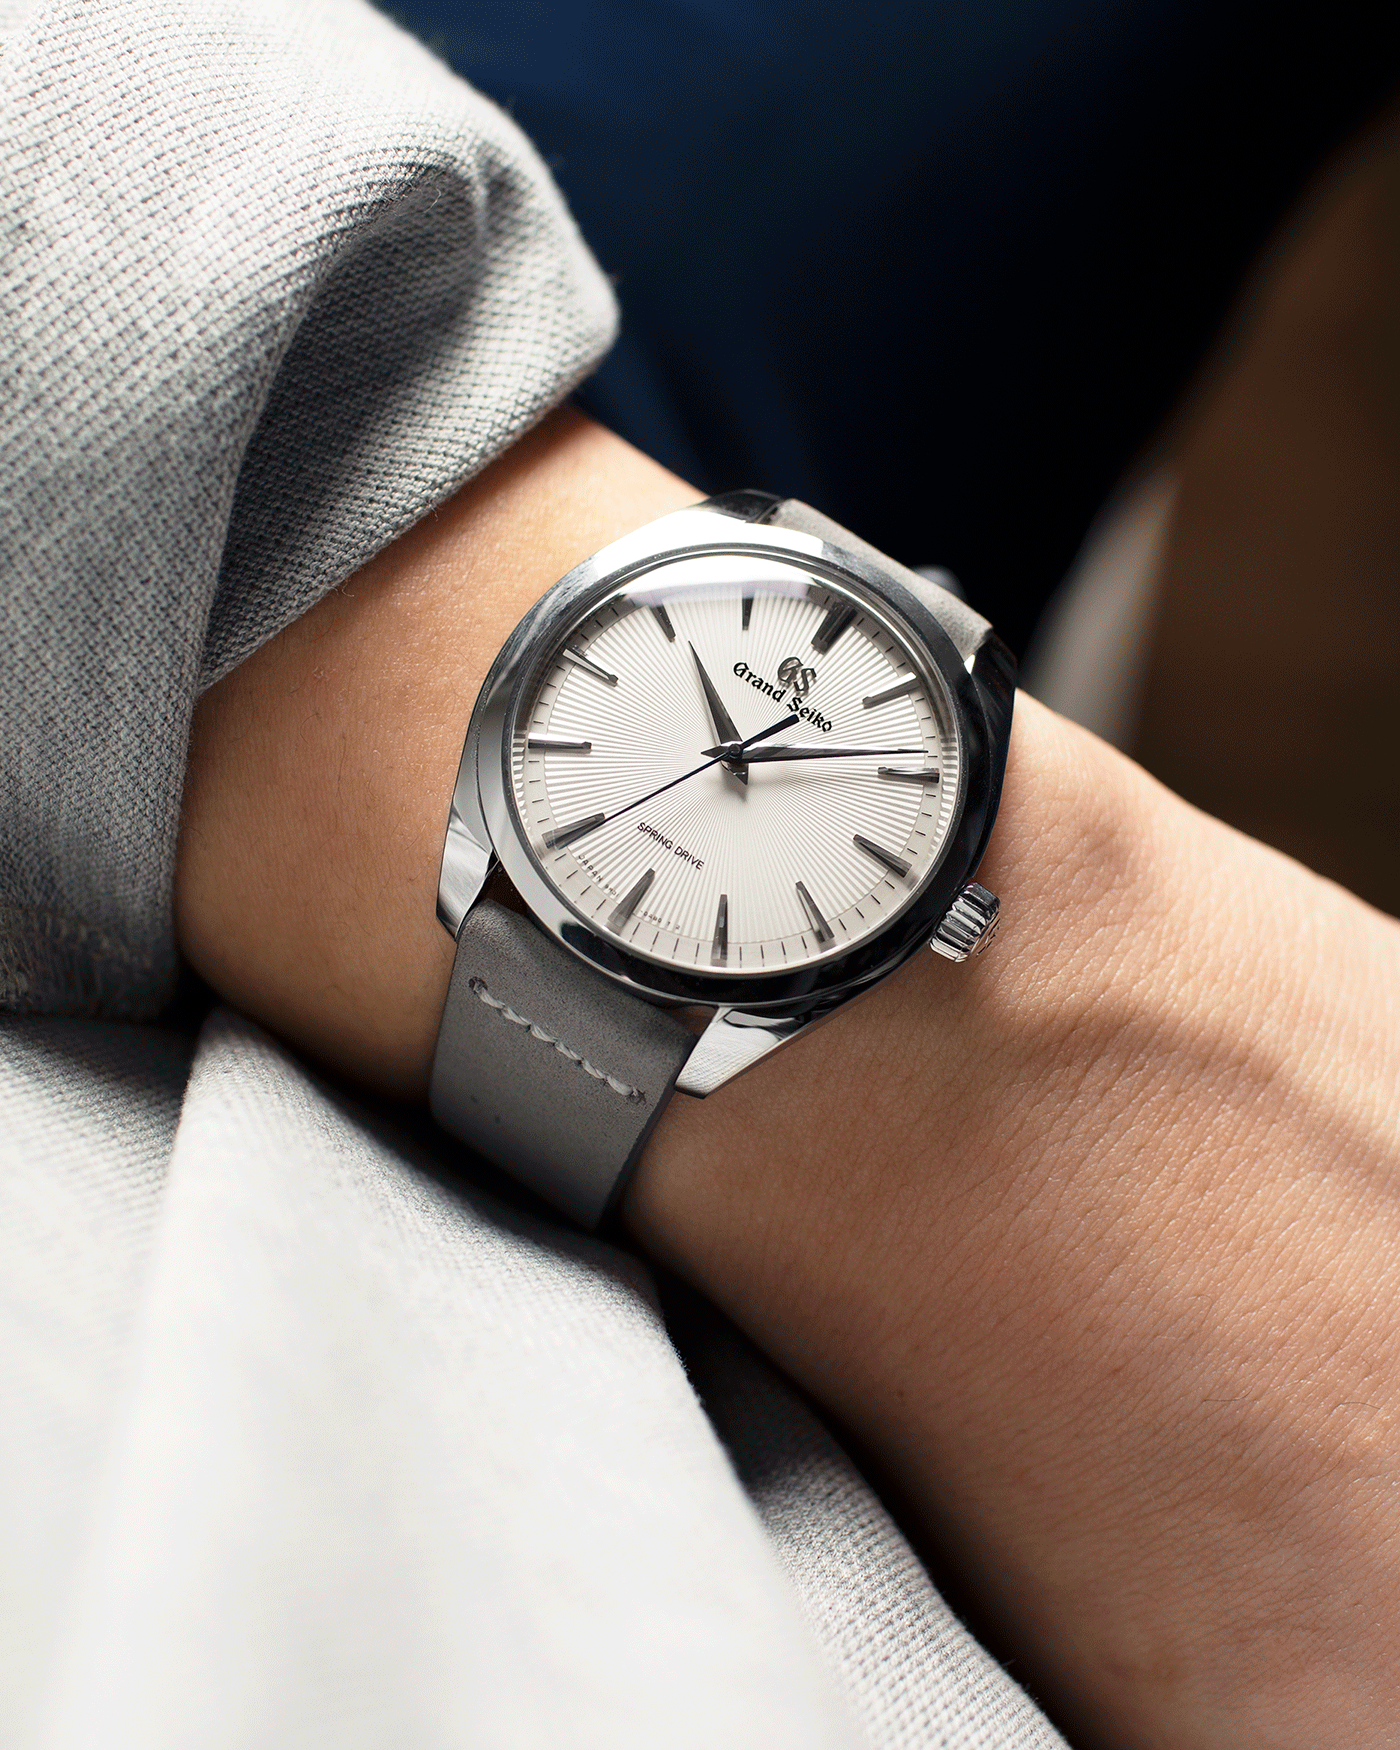 Brand: Grand Seiko Year: 2020 Reference Number: SBGY003 Spring Drive Material: Stainless Steel Movement: Cal 9R31 Case Diameter: 38.5mm Strap: Grey Suede Strap and Original Grand Seiko Black Crocodile Strap with Stainless Steel Deployant